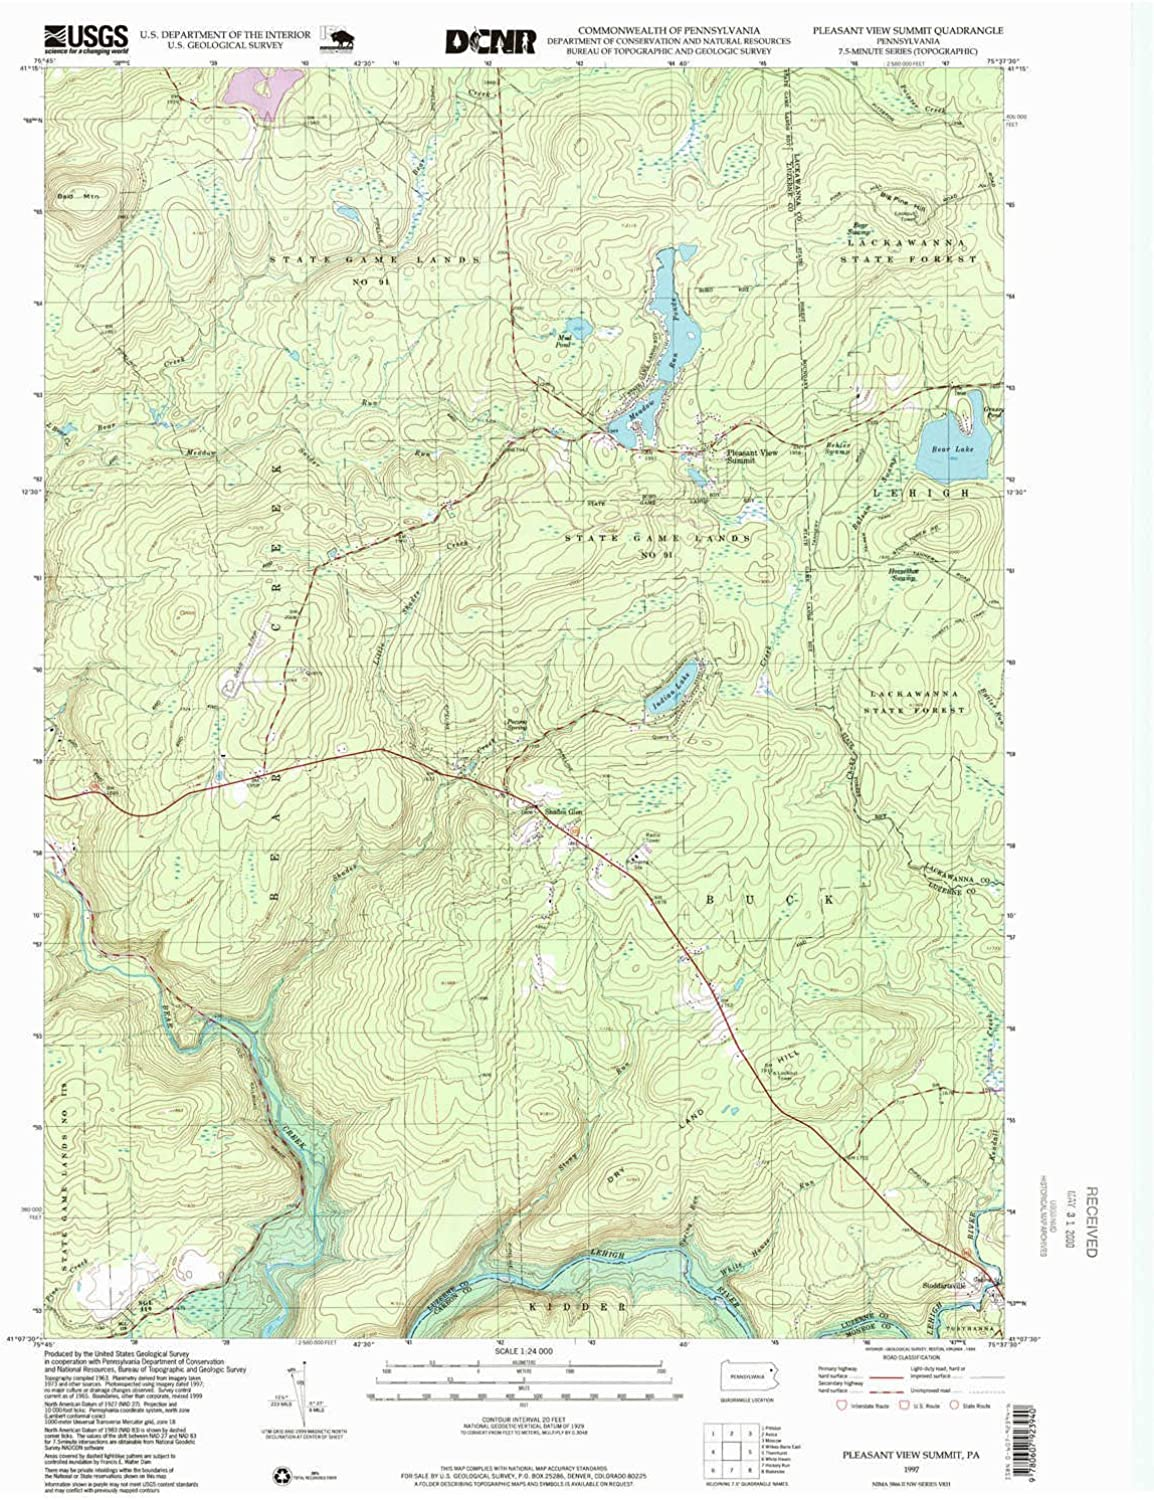 Pleasant View Summit PA topo map, 1 24000 Scale, 7.5 X 7.5 Minute, Historical, 1997, Updated 1999, 26.8 x 22 in